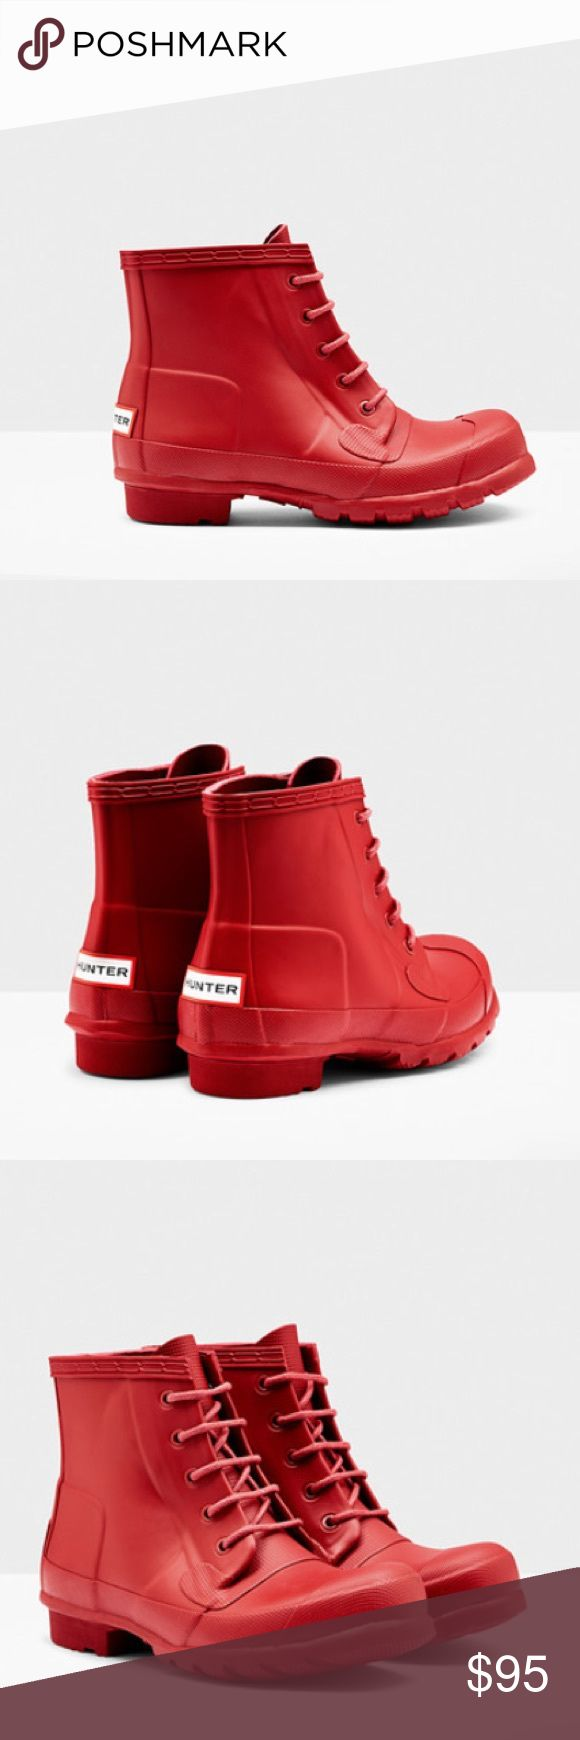 Hunter Ankle Rubber Short Boots Gorgeous red short ankle boots by Hunter Boots, with a Lace Up front. They are amazing! Hunter Boots Shoes Winter & Rain Boots